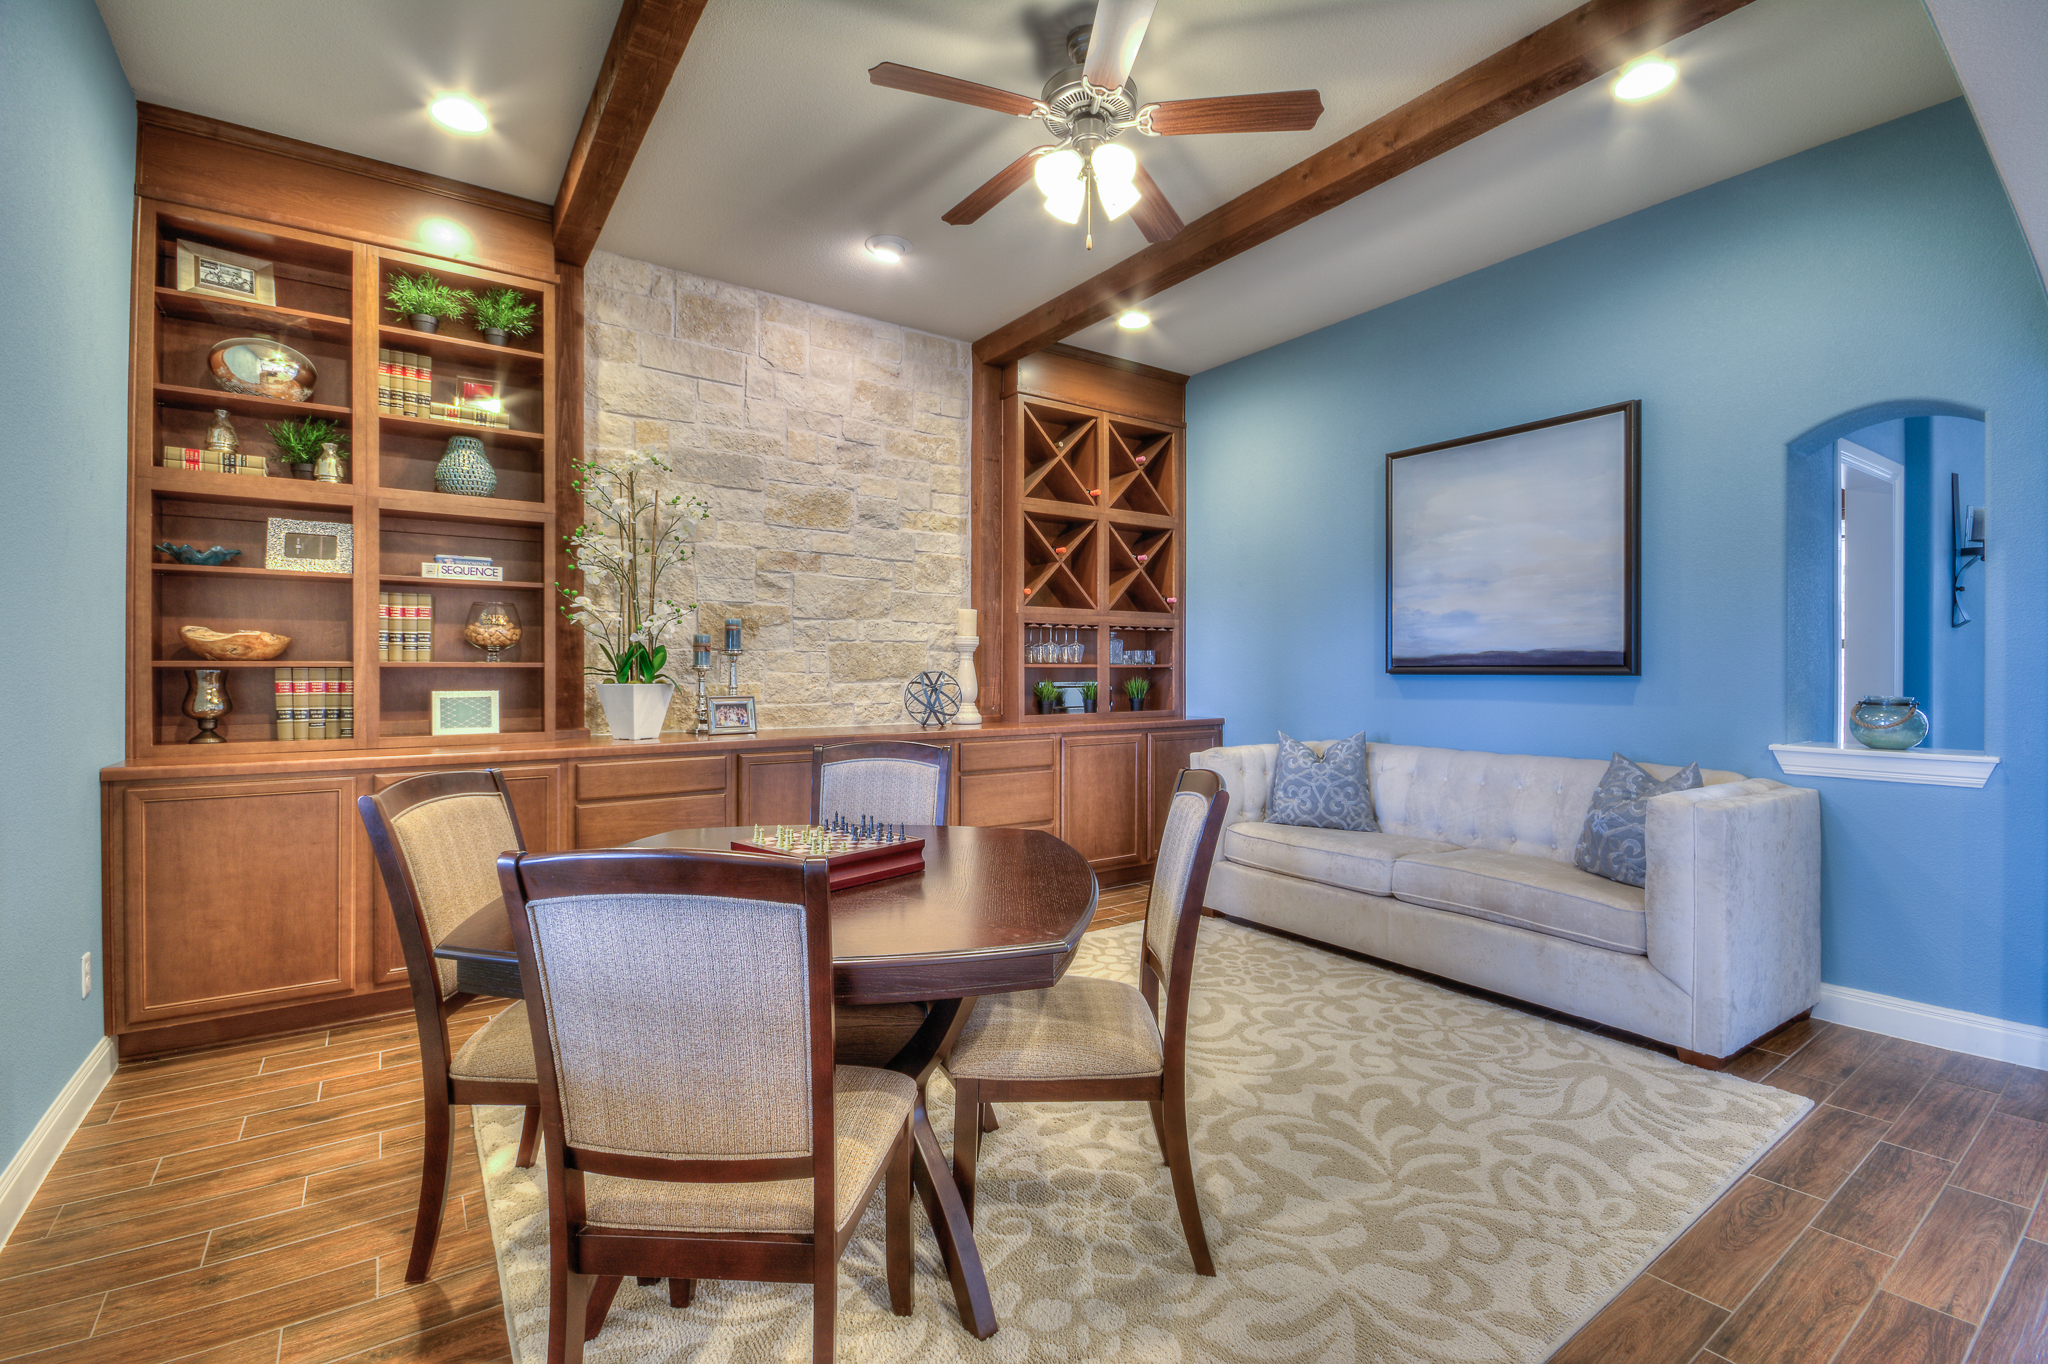 Professional model home study design by Michelle Thomas Design in Austin, TX